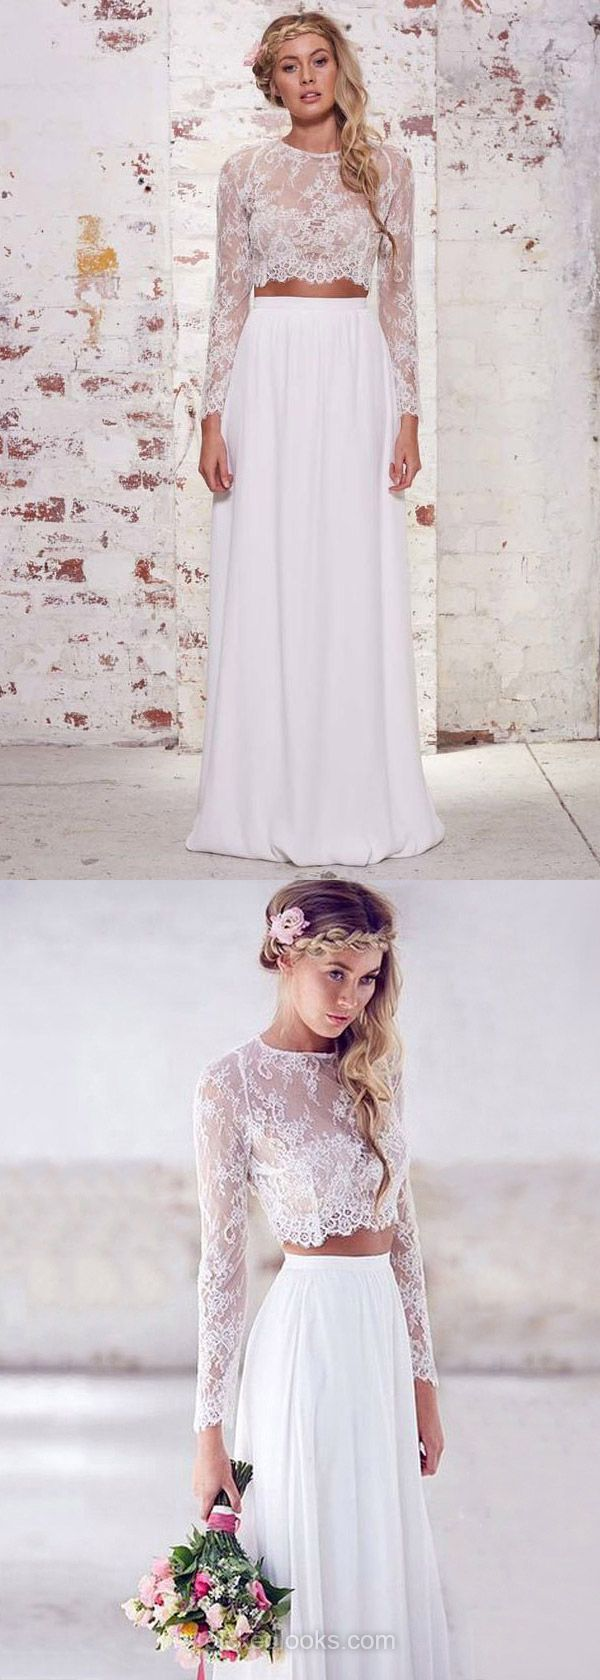 White ball dresses long two piece prom dresses lace evening